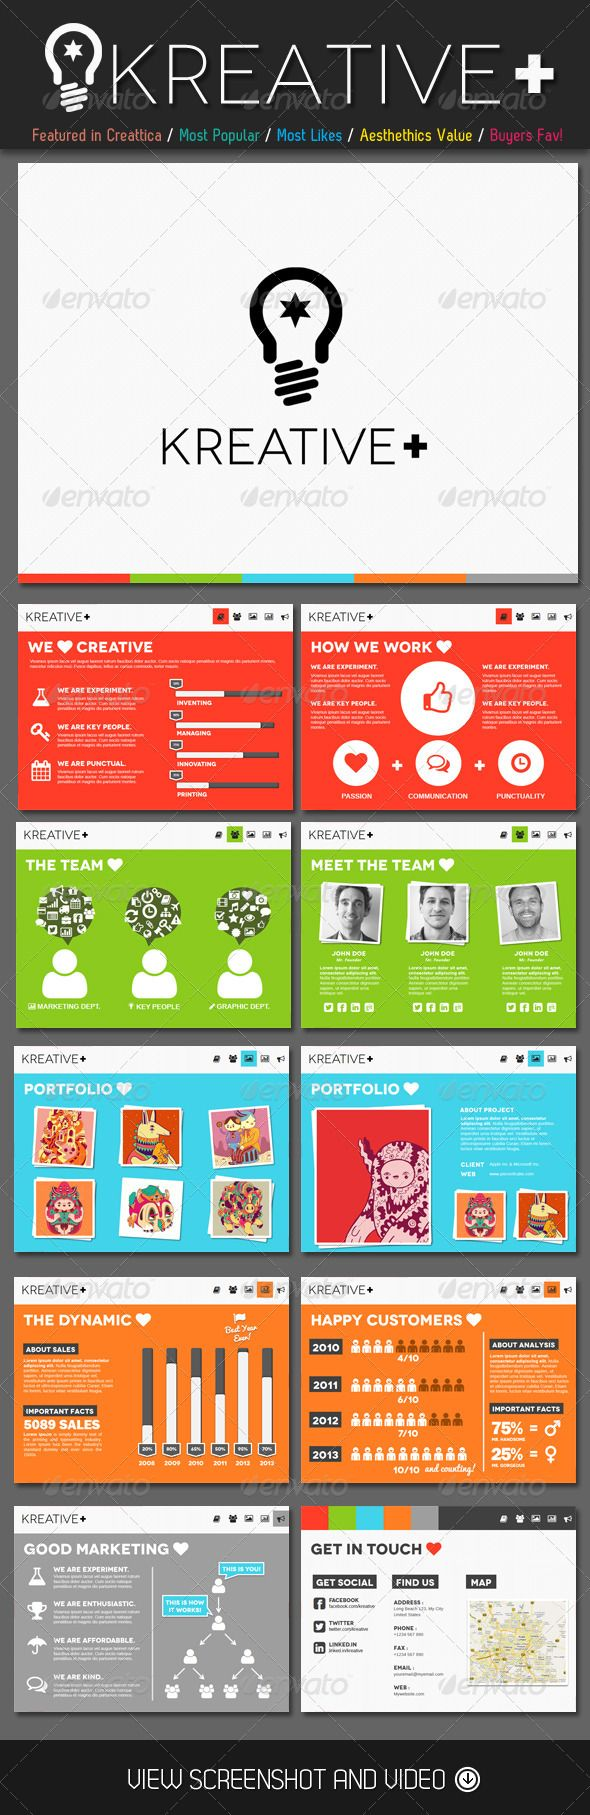 Kreative+ Infographic PowerPoint Template - Presentation Templates